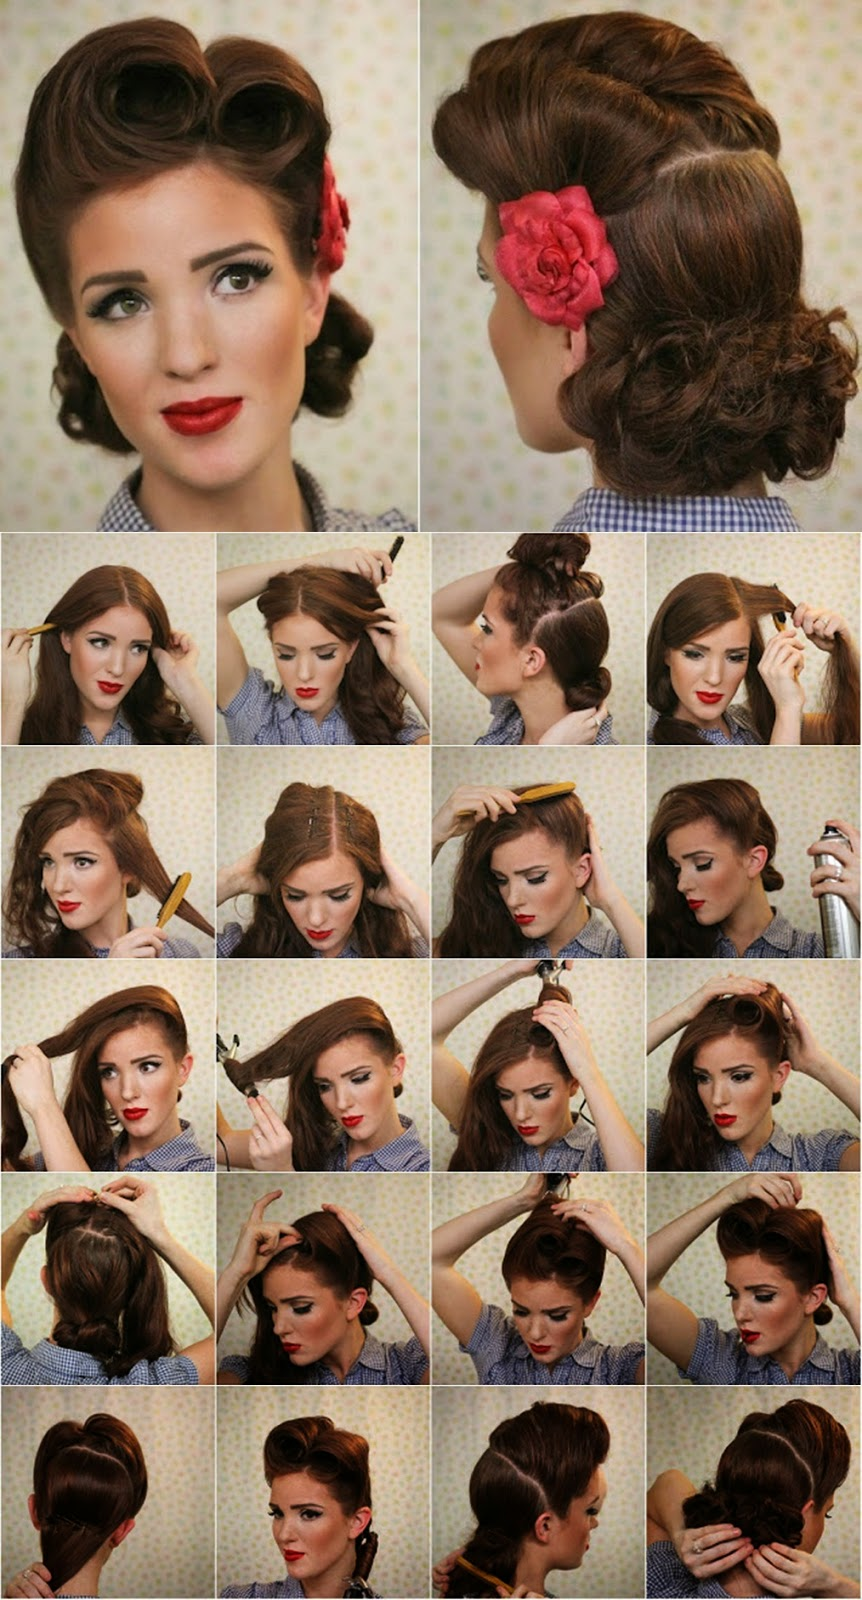 50s pin up hairstyles : tips tutorial hope tutorial style tips vintage vintage hair 50s hair ...